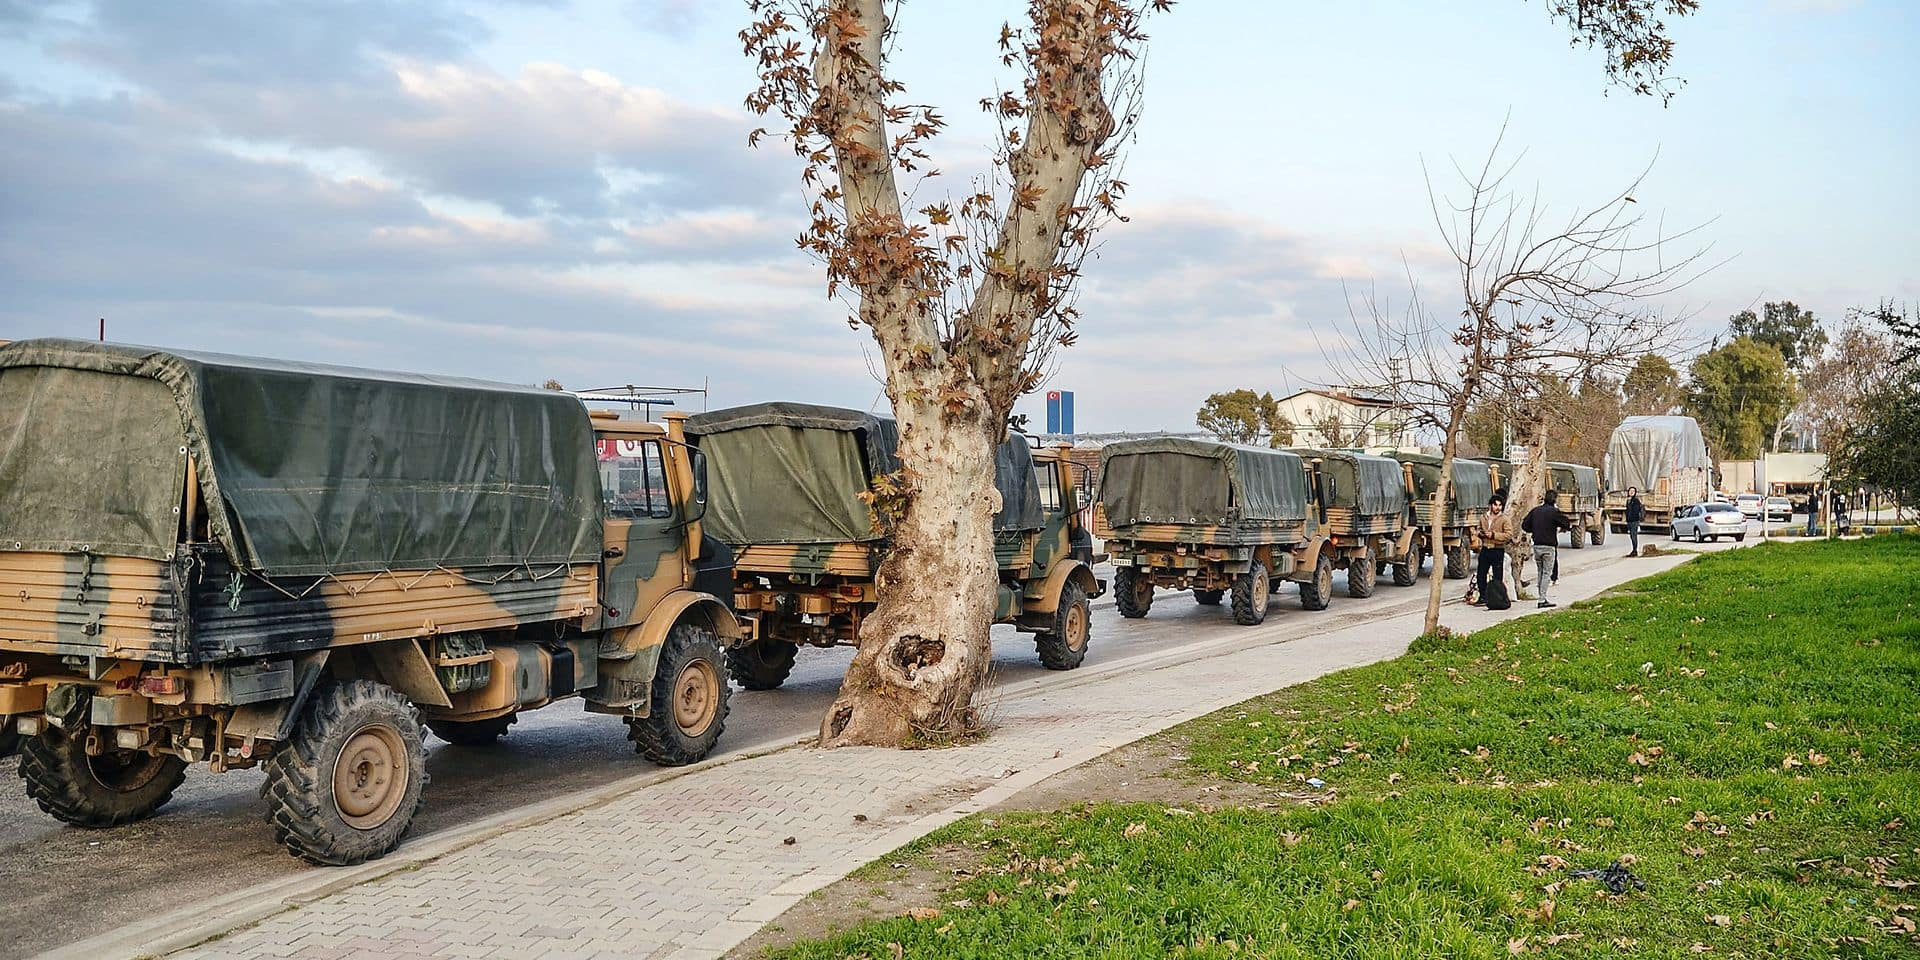 """A picture shows a Turkish military convoy at Kirikhan, in Hatay region at the Syria border, on January 12, 2019. - Turkey vowed on January 14, 2019 to continue fighting a US-backed Kurdish militia which it views as a terrorist group after US President Donald Trump warned of economic devastation if Ankara attacks Kurdish forces as American troops withdraw. Turkish President Recep Tayyip Erdogan's spokesman Ibrahim Kalin said on Twitter that there was """"no difference"""" between the Islamic State extremist group and the Kurdish People's Protection Units (YPG) militia. (Photo by STRINGER / DHA / AFP) / Turkey OUT"""